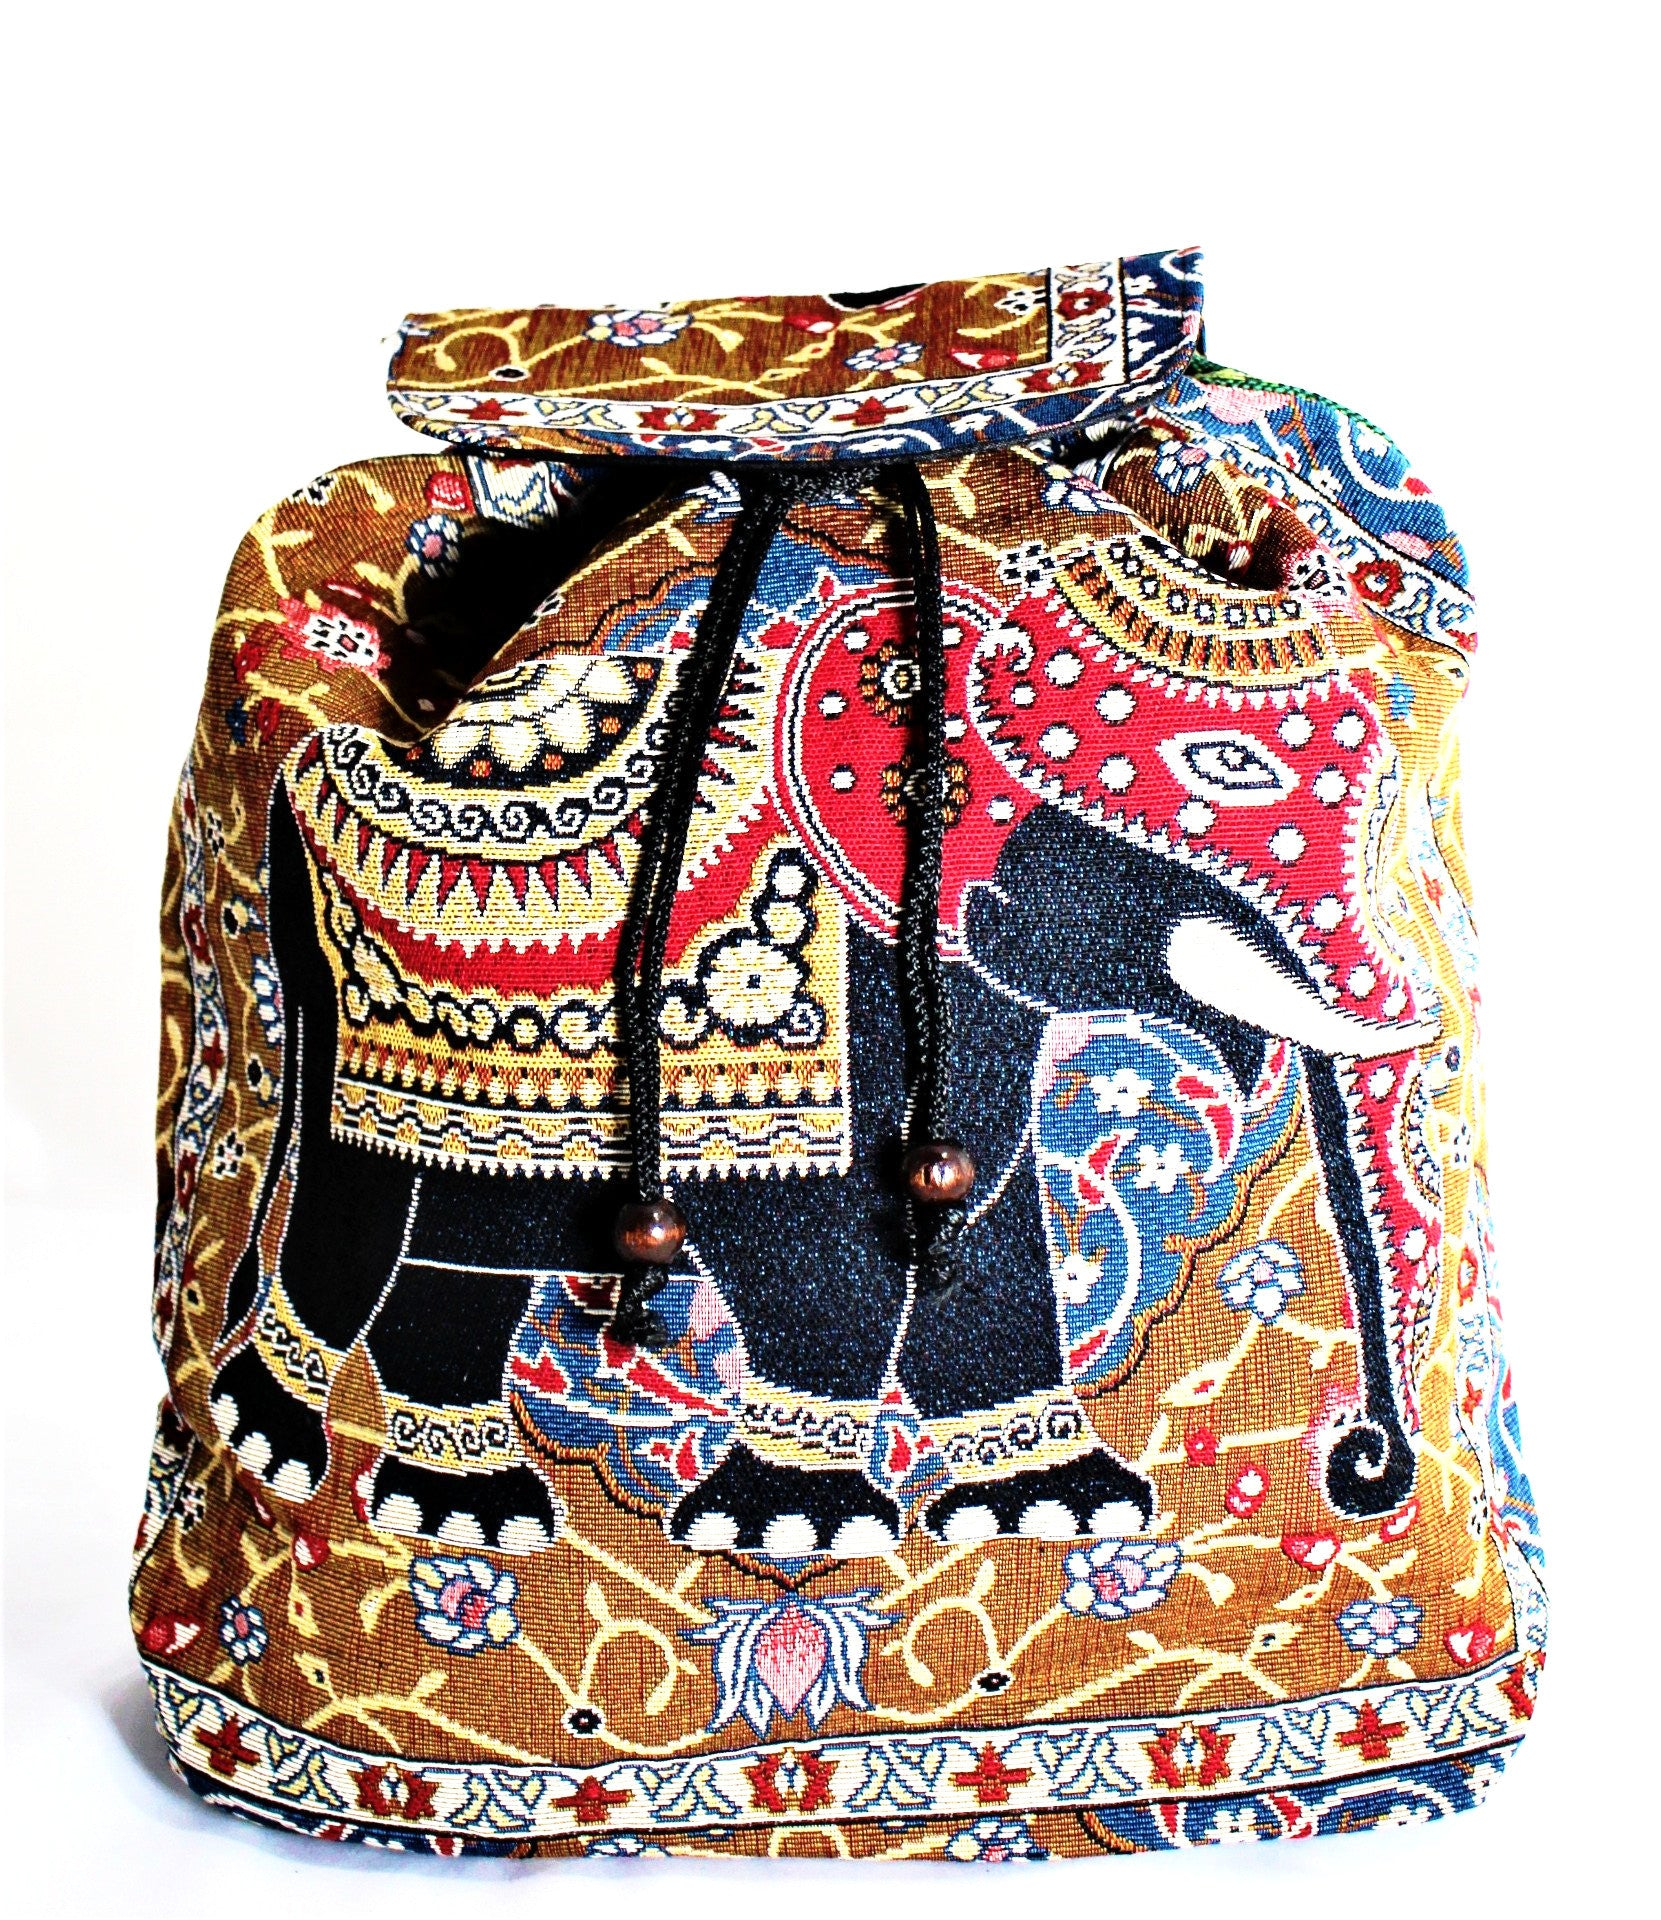 Elephant Print Embroidery Canvas Backpack - Bridges to Borders